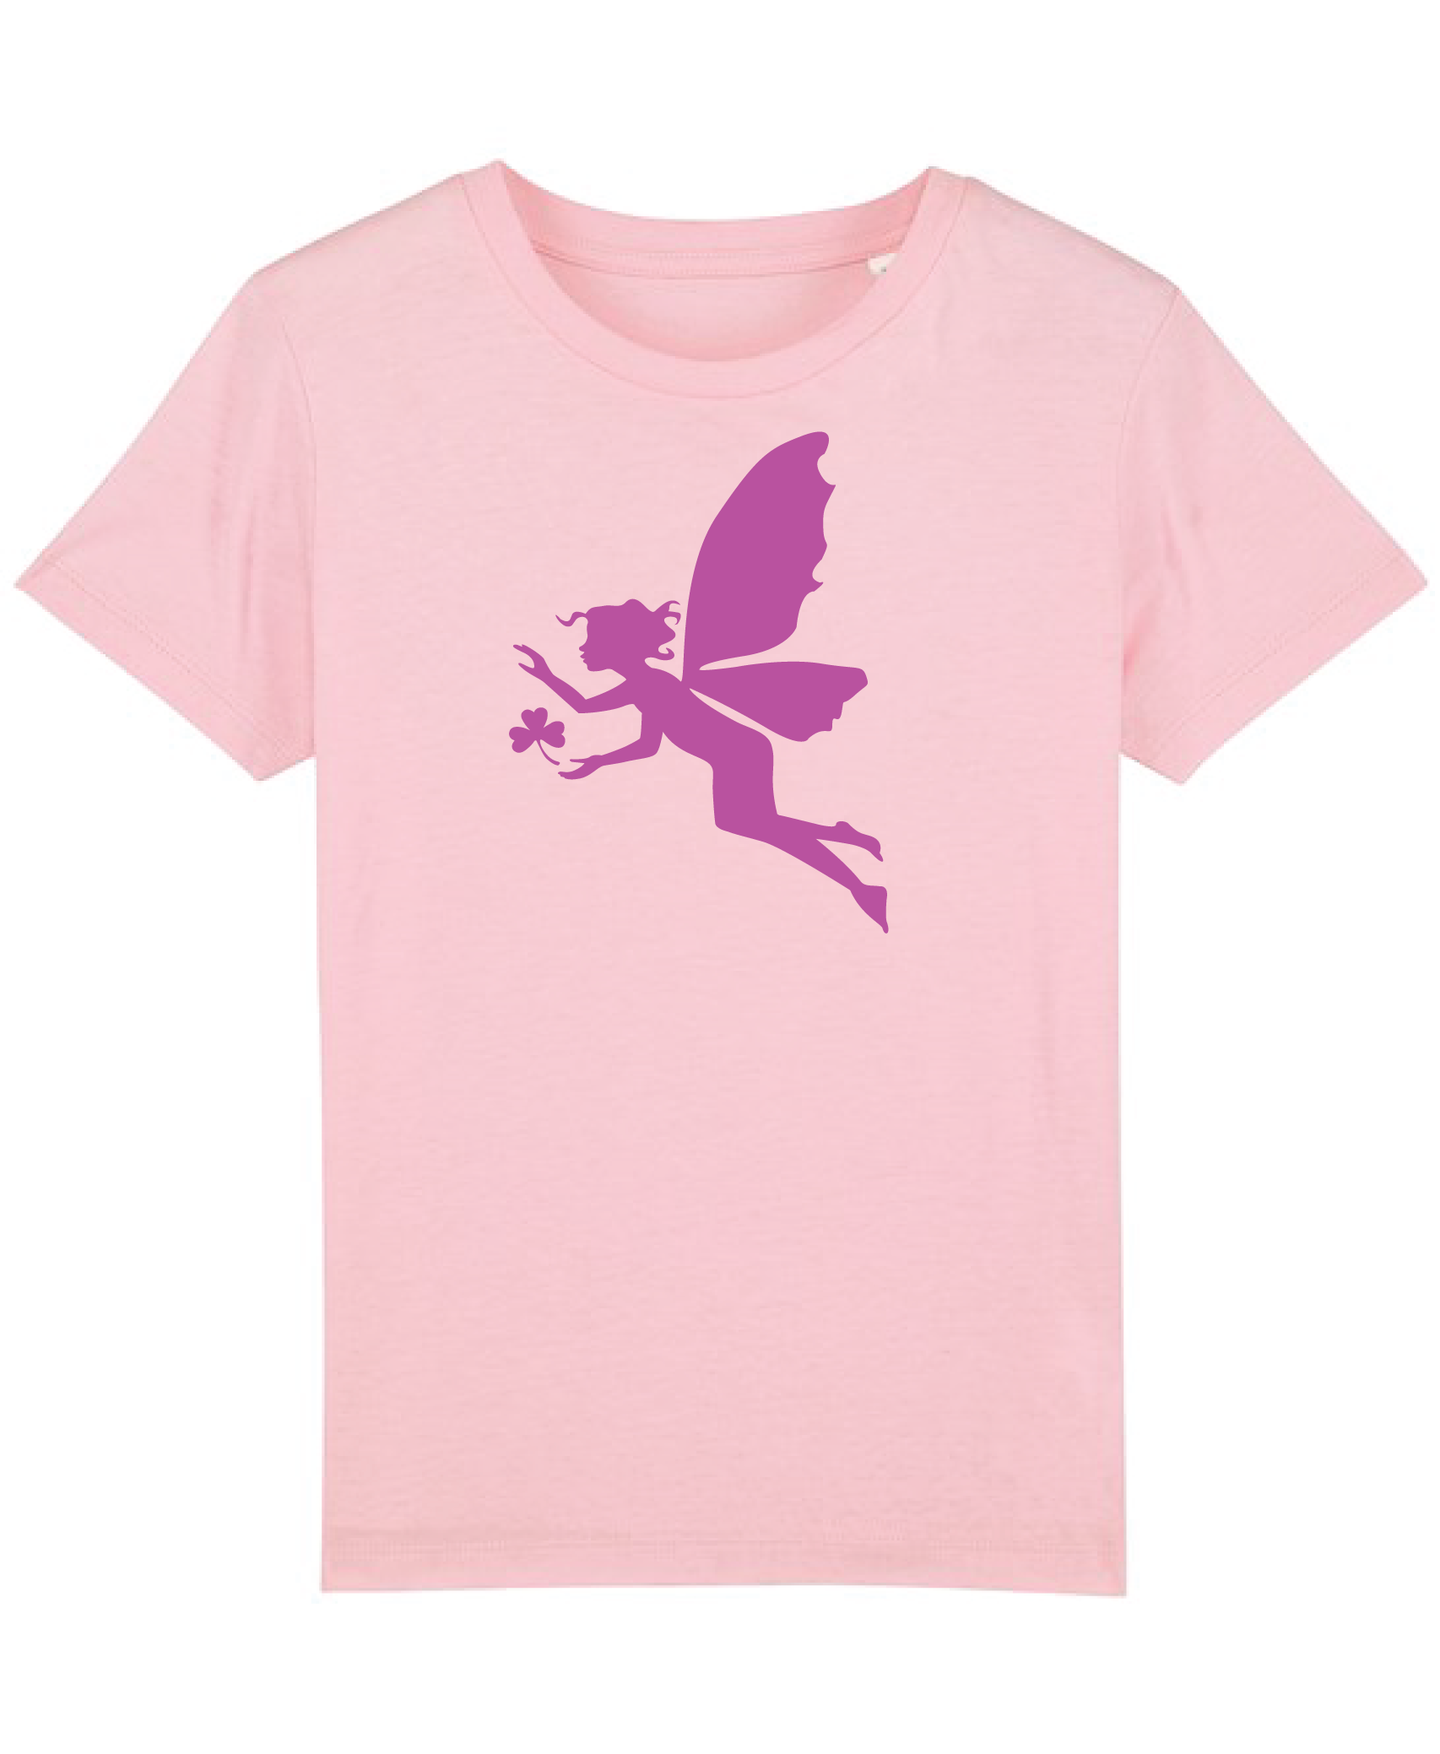 Girls New Pink Organic tee shirt with Fairy flock print.